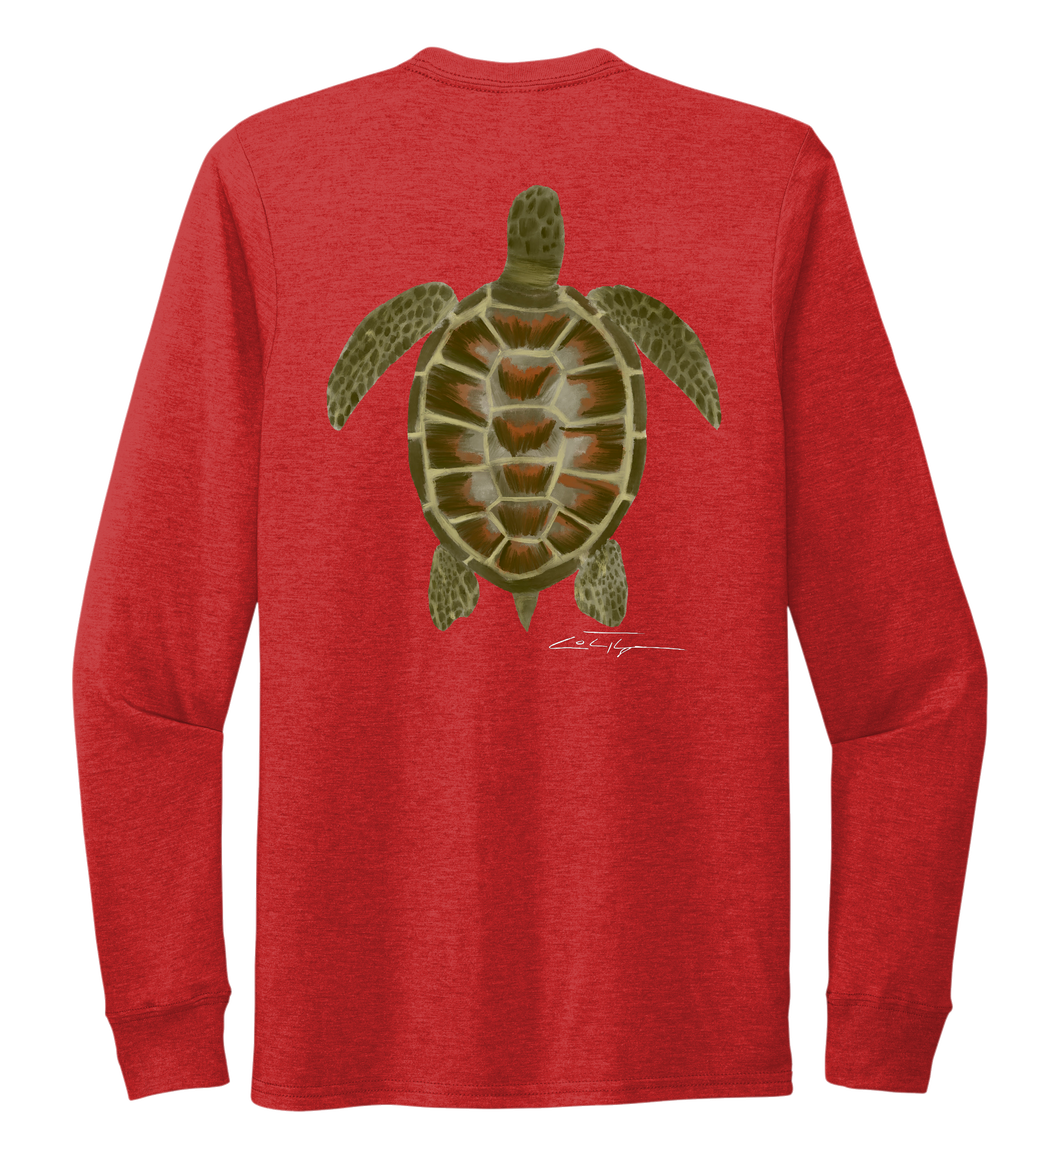 Colin Thompson, Turtle, Crew Neck Long Sleeve T-Shirt in Bravo Red